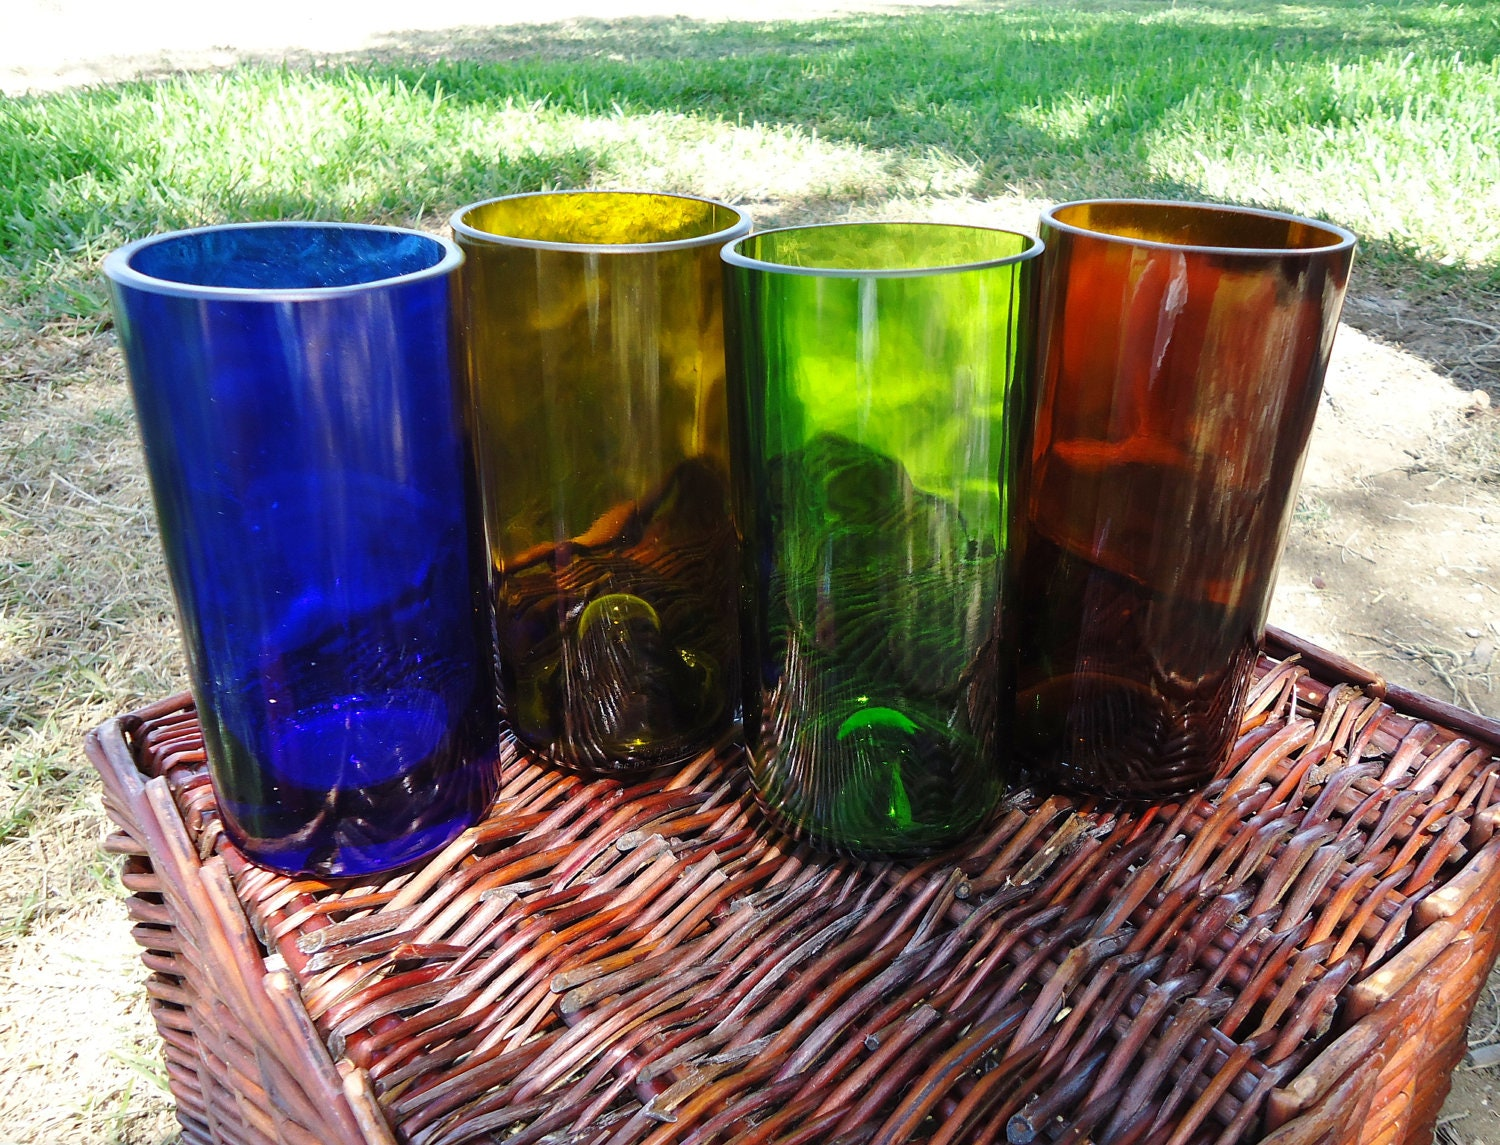 Wine Bottle and Liquor Bottle Glasses Colorful Set of 4